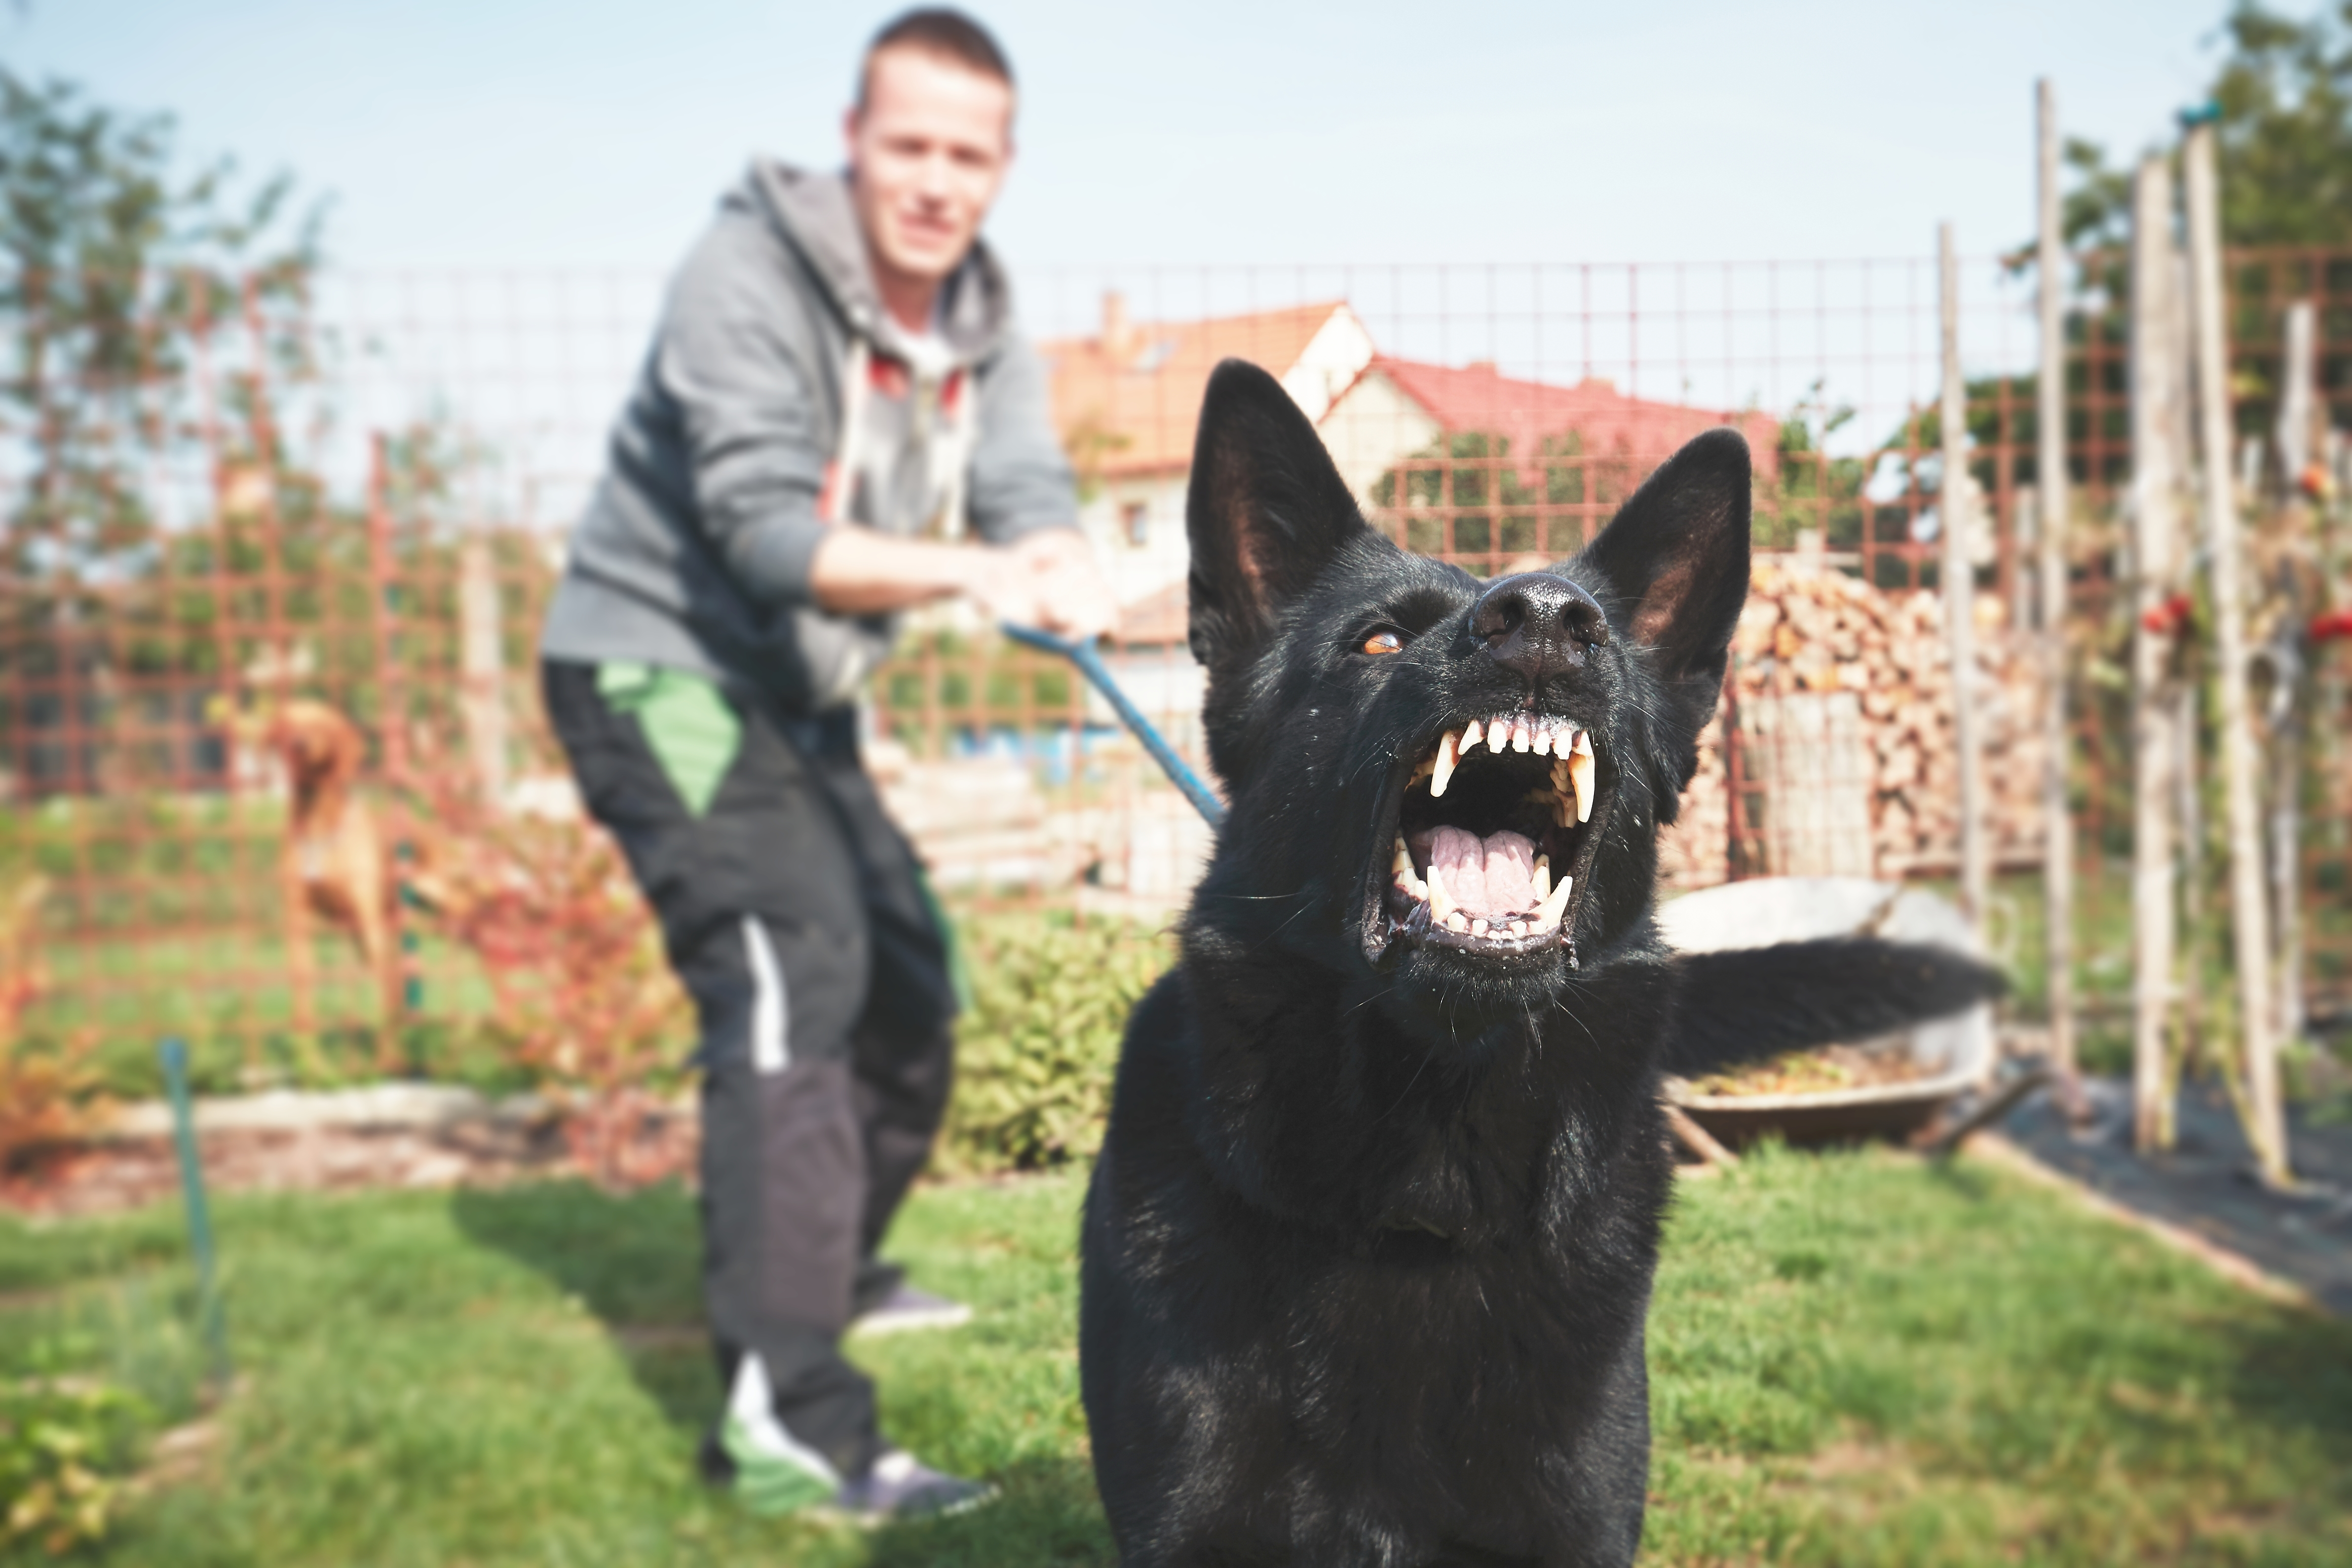 Is the Owner Liable? Here's What an Arizona Dog Bite Lawyer Would Tell You